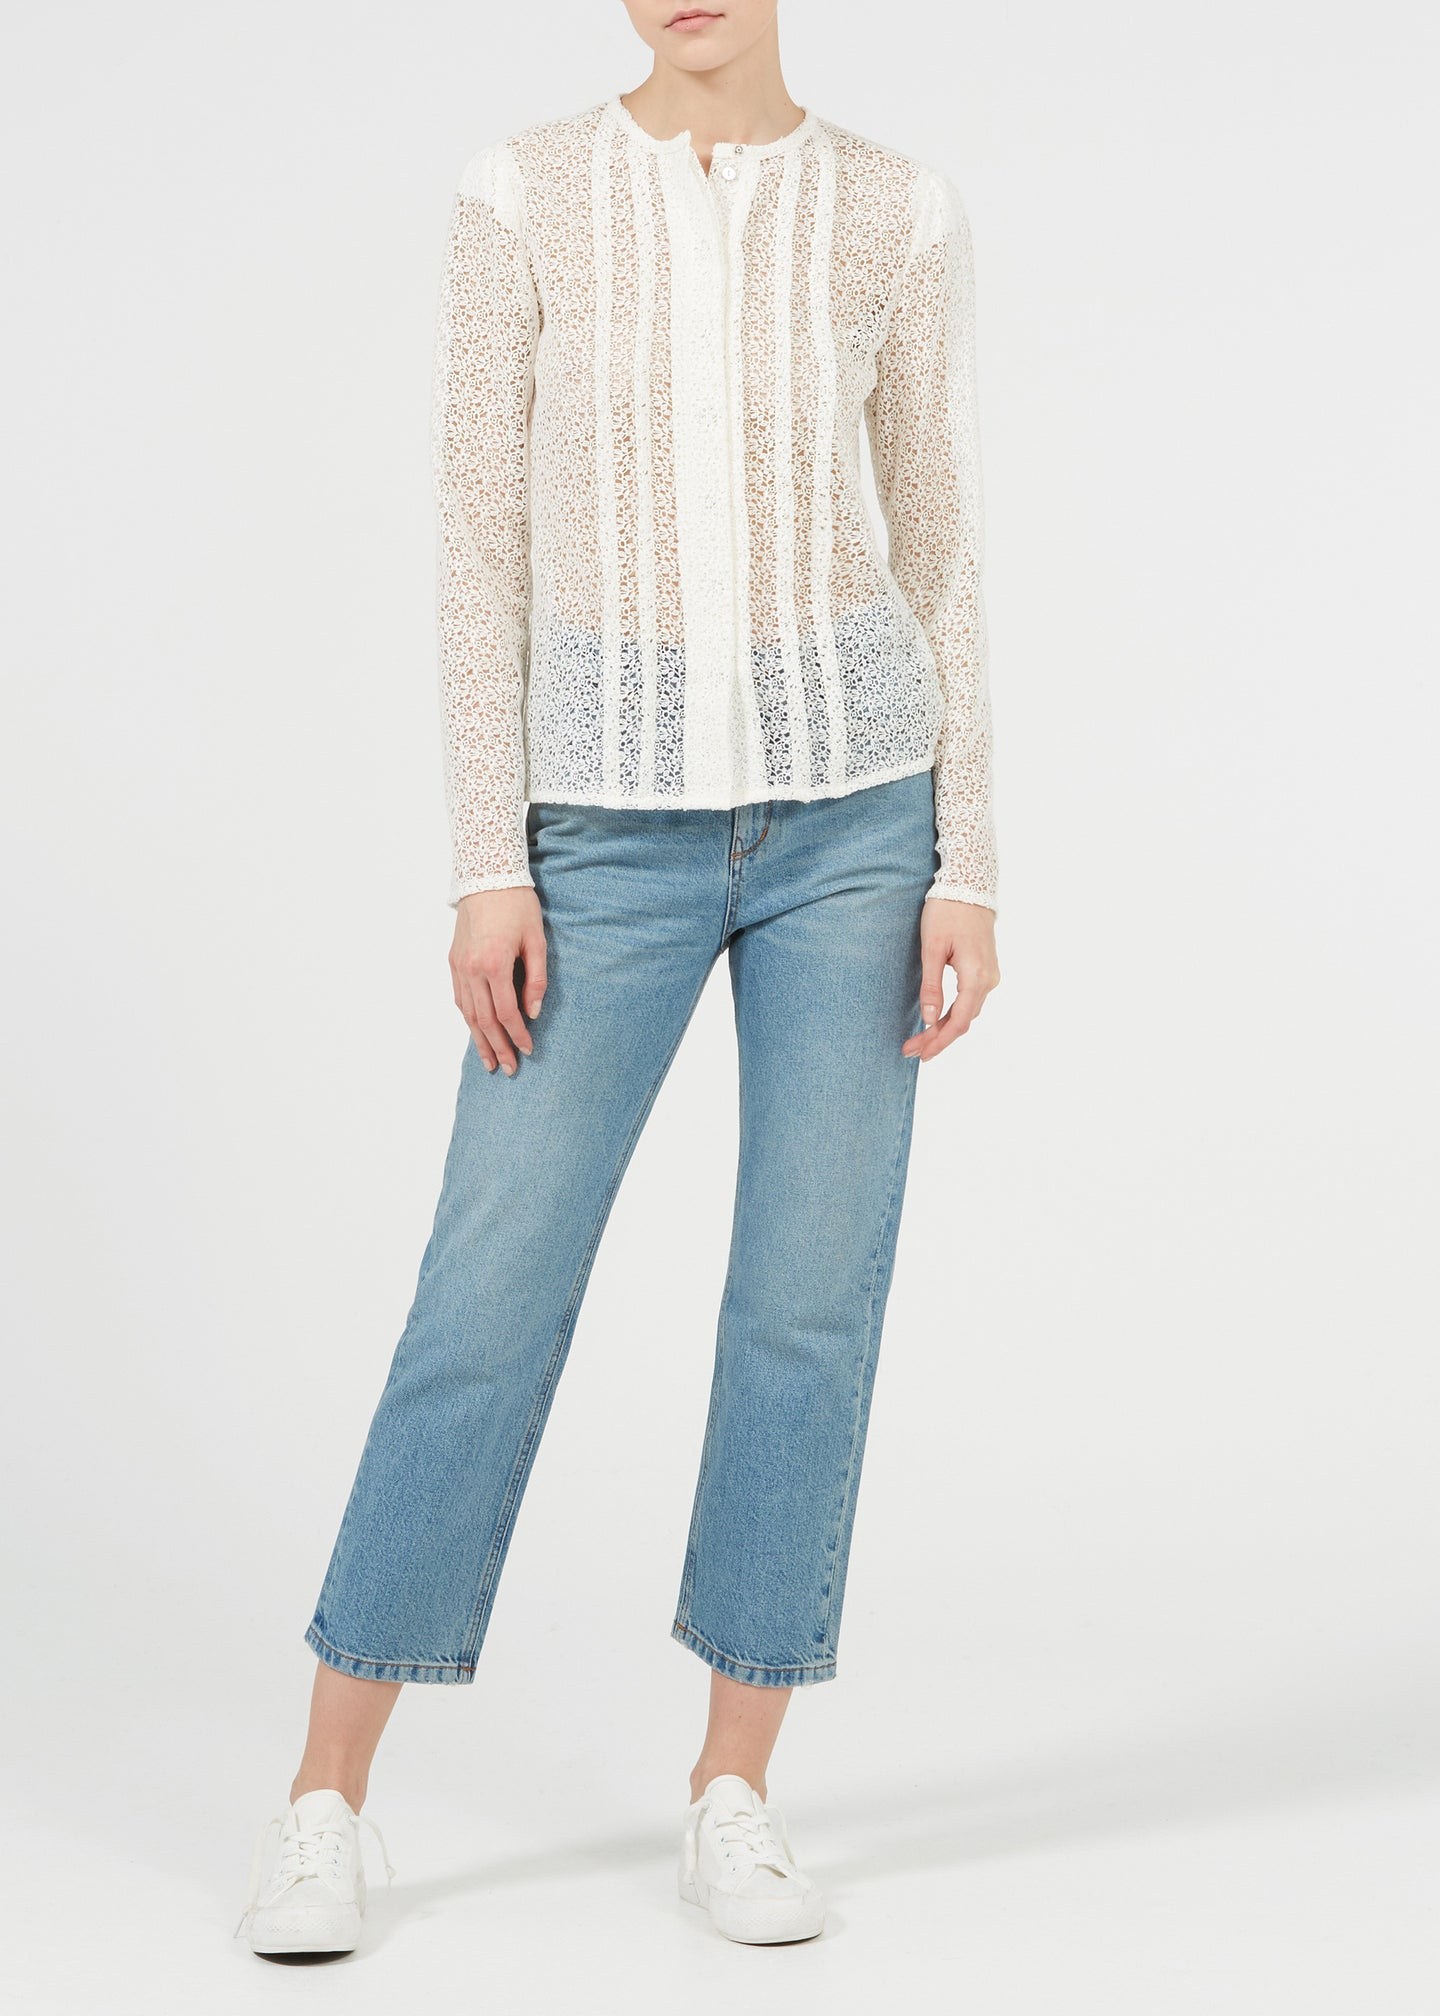 Greta Blouse - Milk Lace